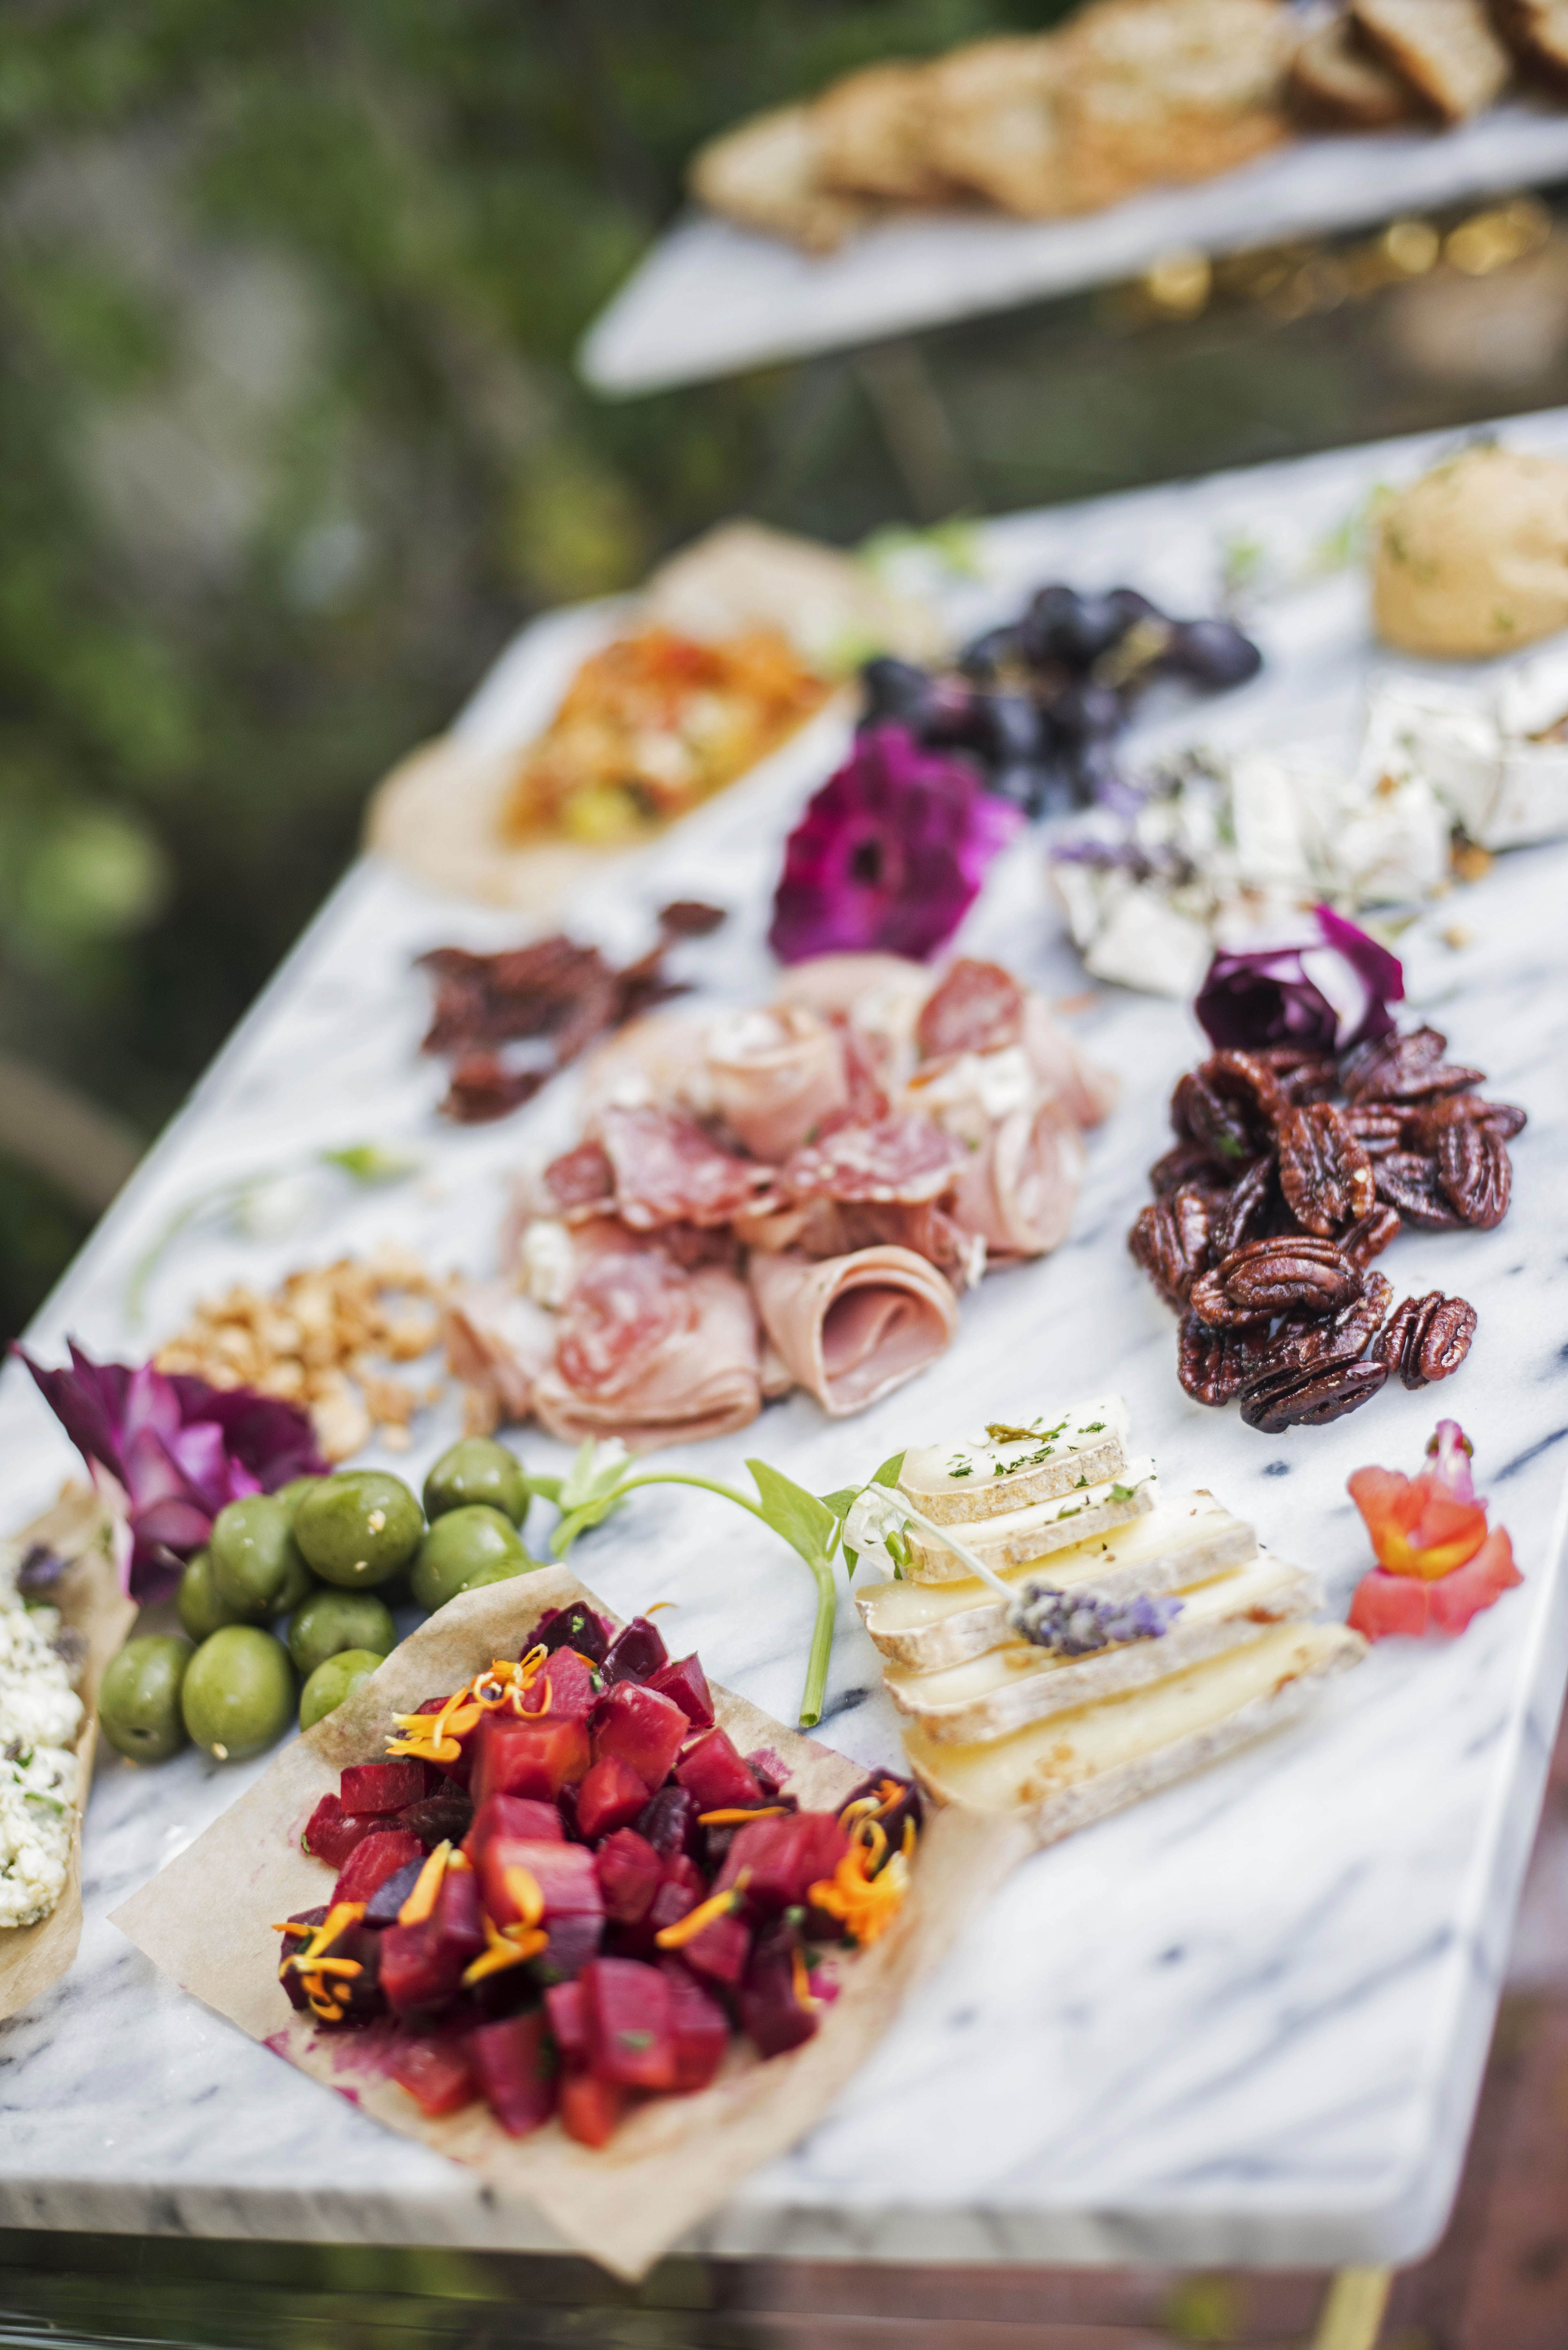 Appetizers at Emily Schuman's Garden Party